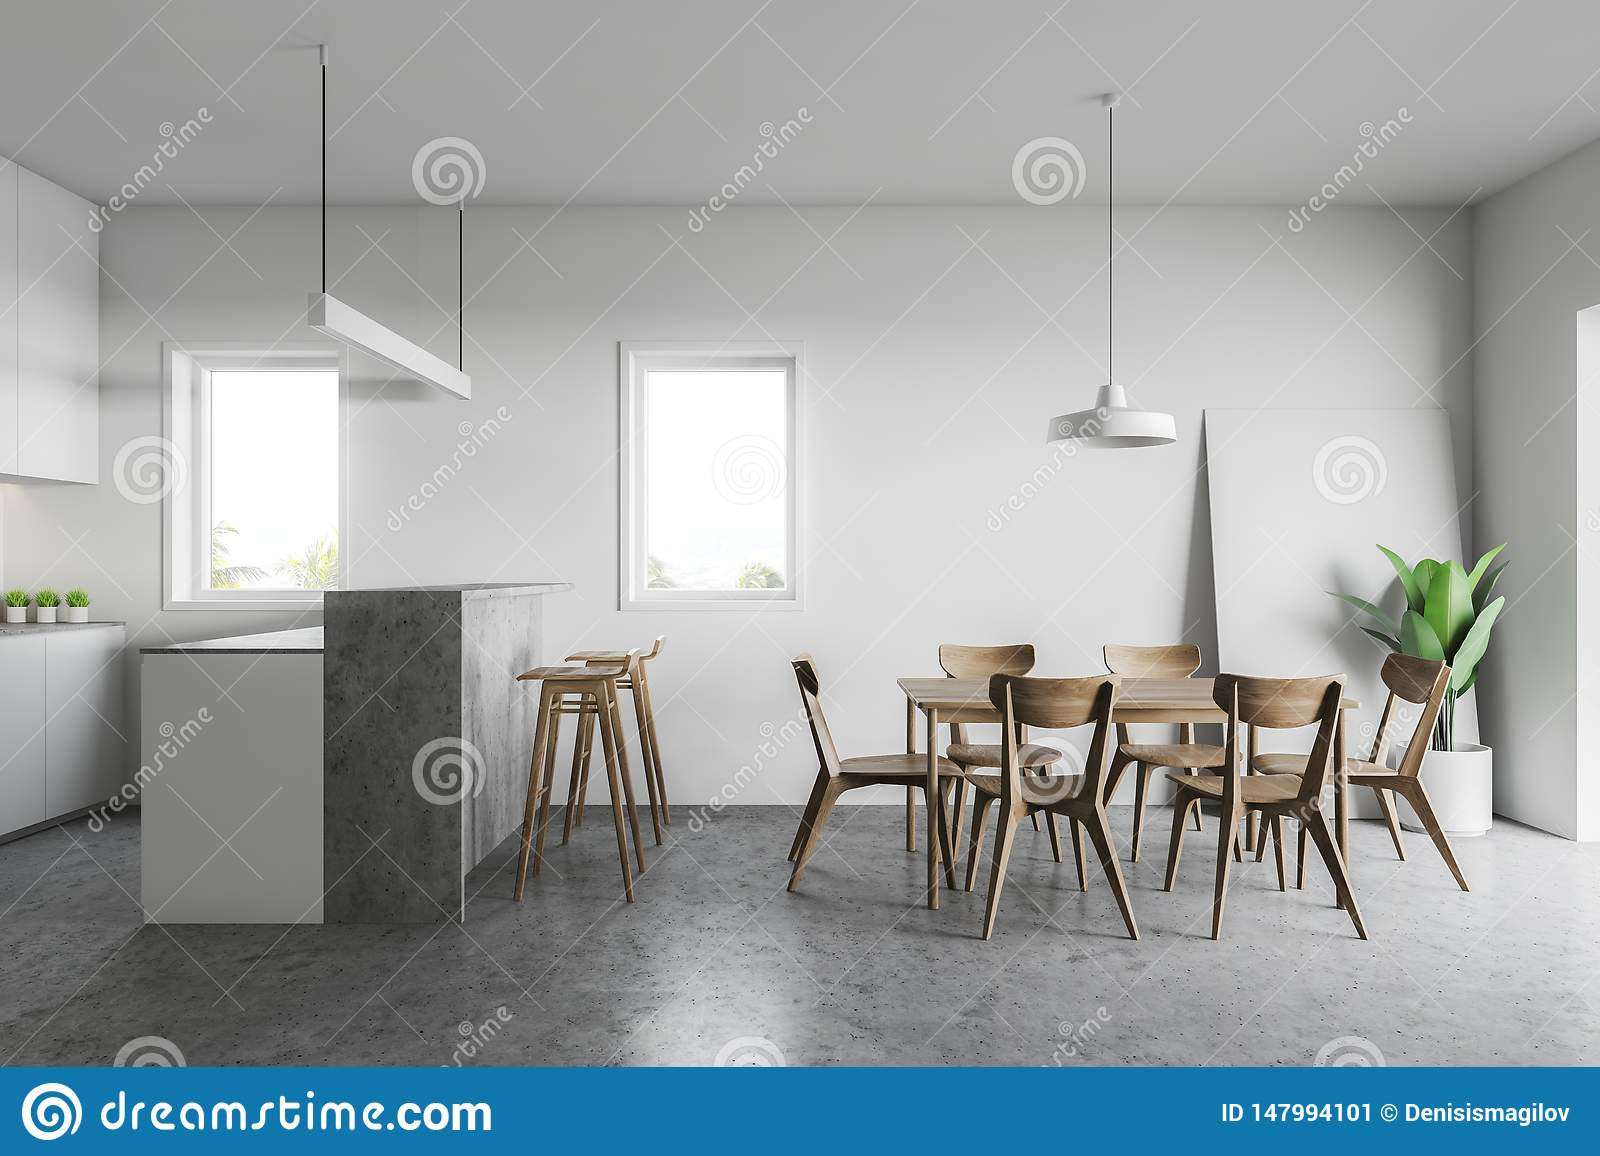 White Kitchen With Bar And Table Stock Illustration   Illustration ...